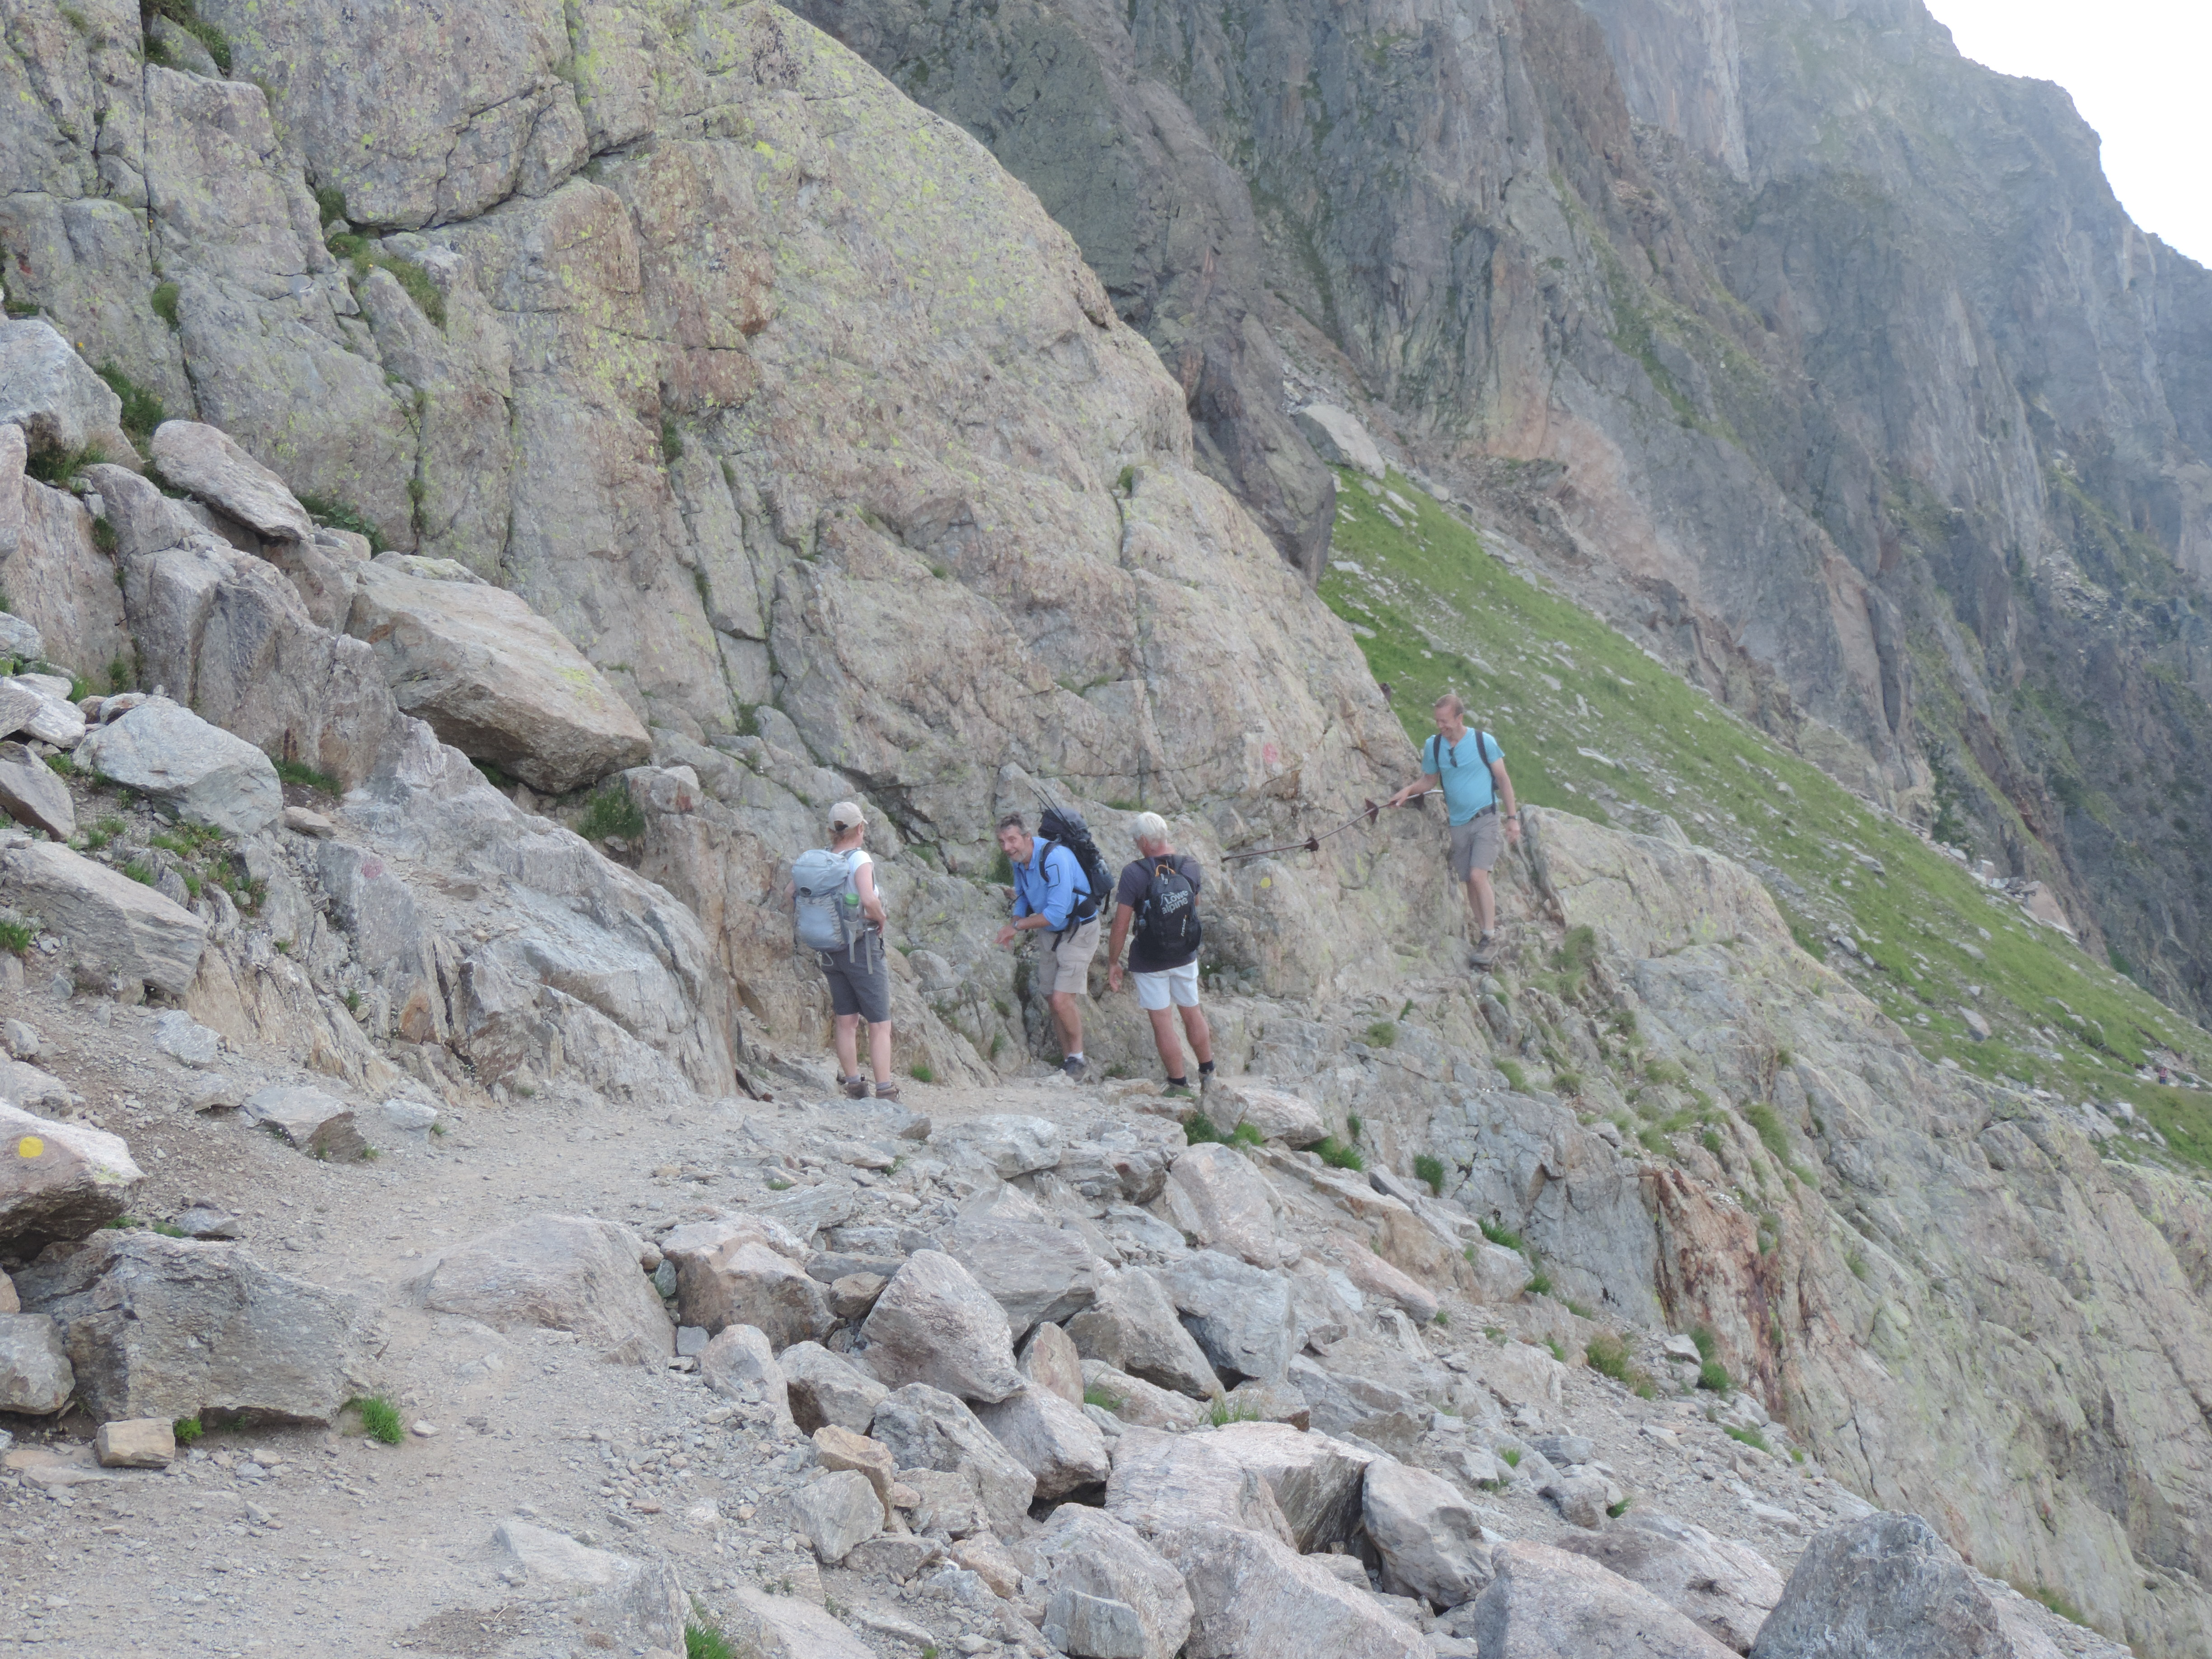 image: heading for Lac Cornu and Lac Noir